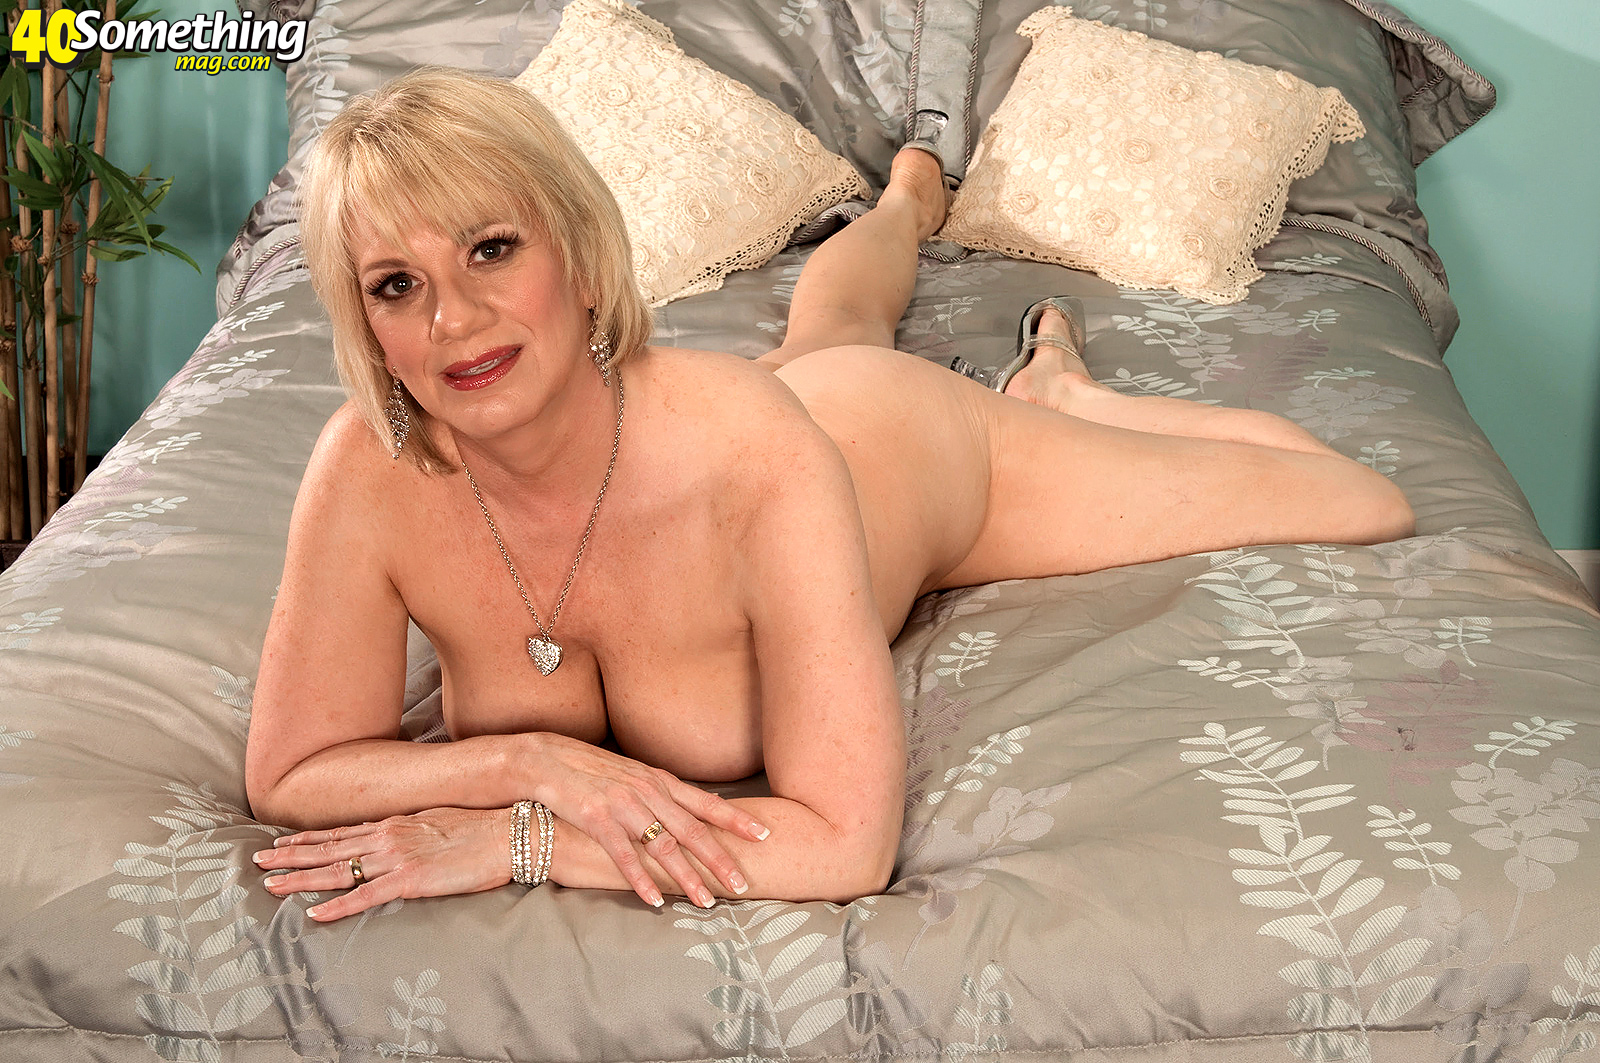 Old Granny Fuck Tube mature old porn tube free milf old porn videos - xxxpicz